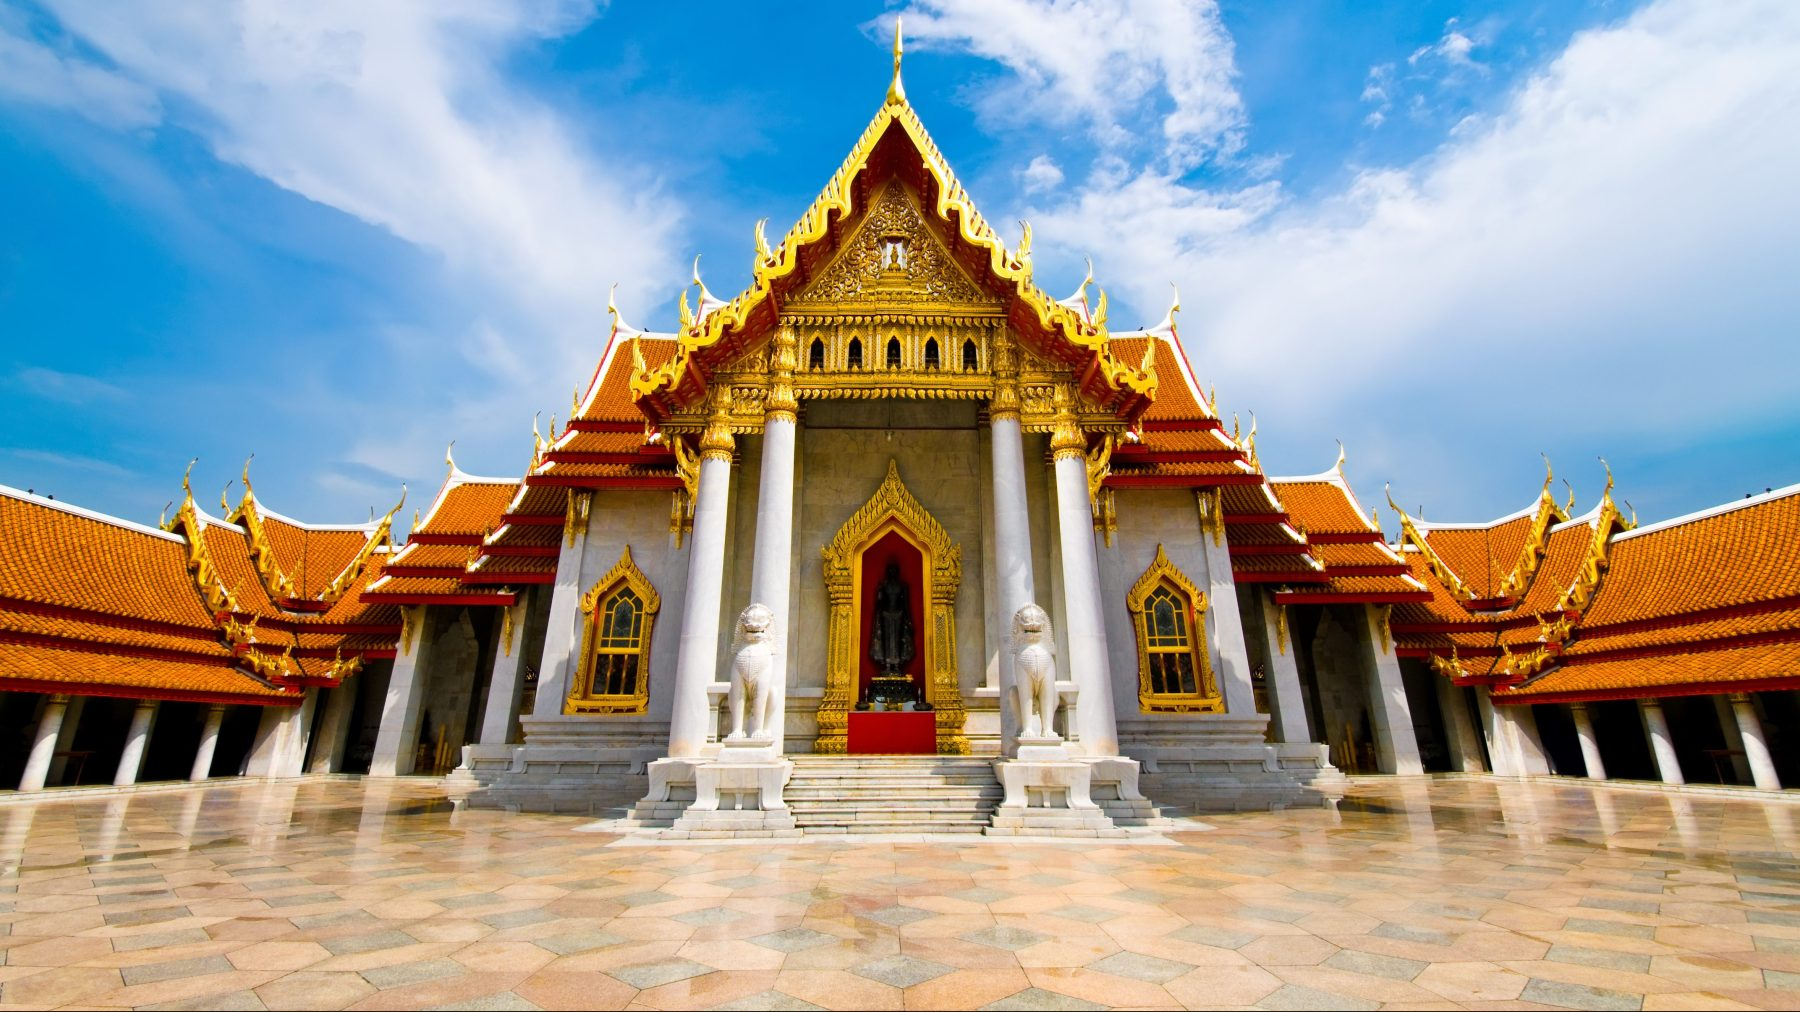 """""""The Marble Temple (Wat Benchamabophit ) Golden roof, Bangkok, Thailand. Beautiful cloudscape and blue sky over traditional Thai architecture. Each of the foreground tiles bears an image of Buddha. See more images like this in:"""""""